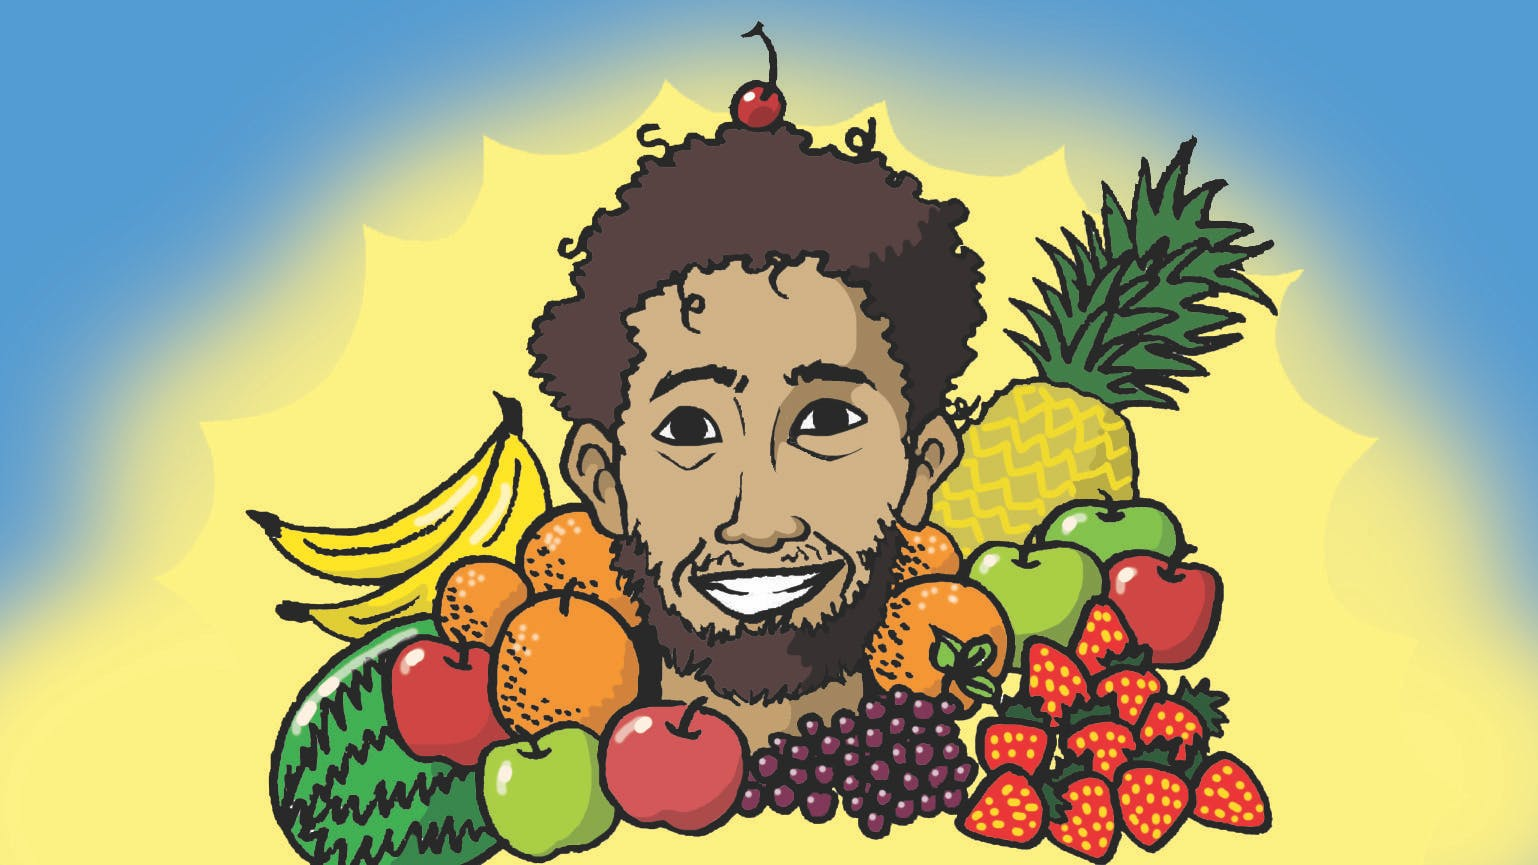 What's healthy and scores a lot of goals? - Mohamed Fruit Salah